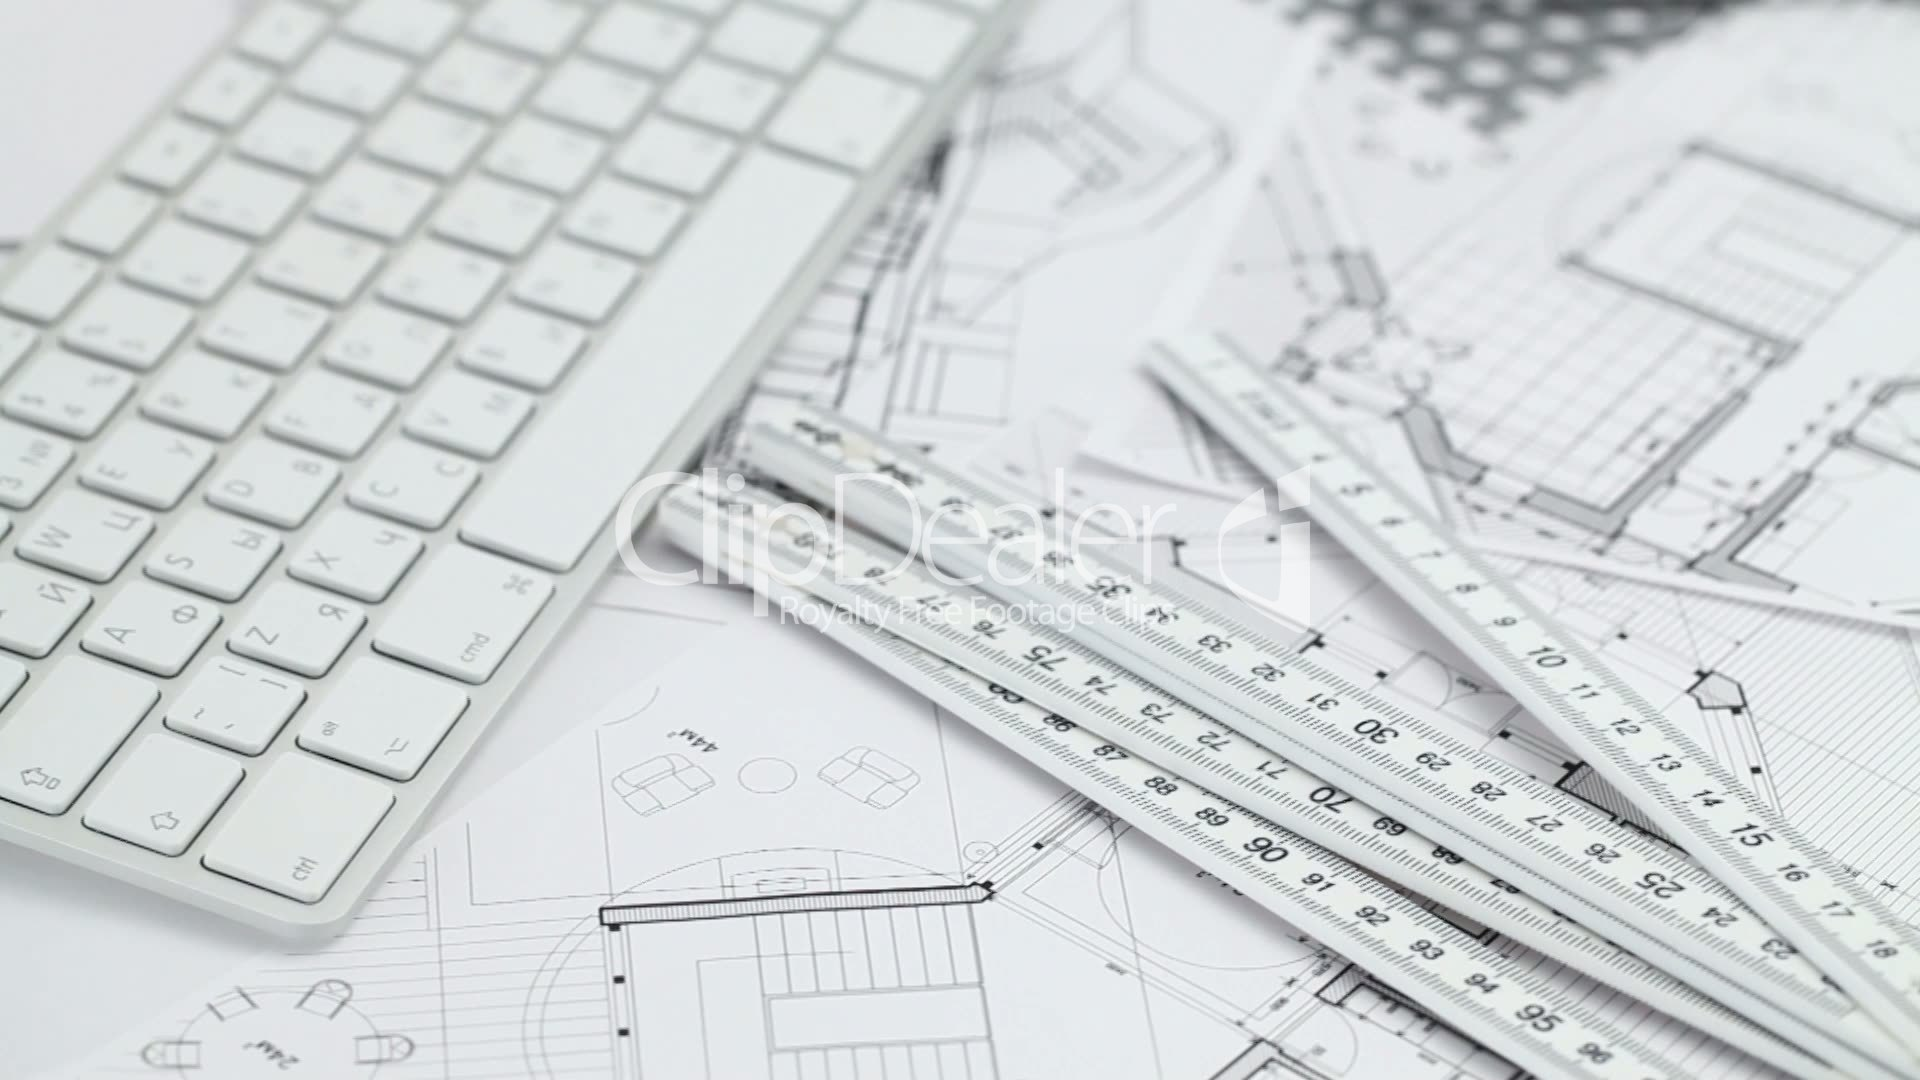 keyboard & architectural plans: Royalty-free video and